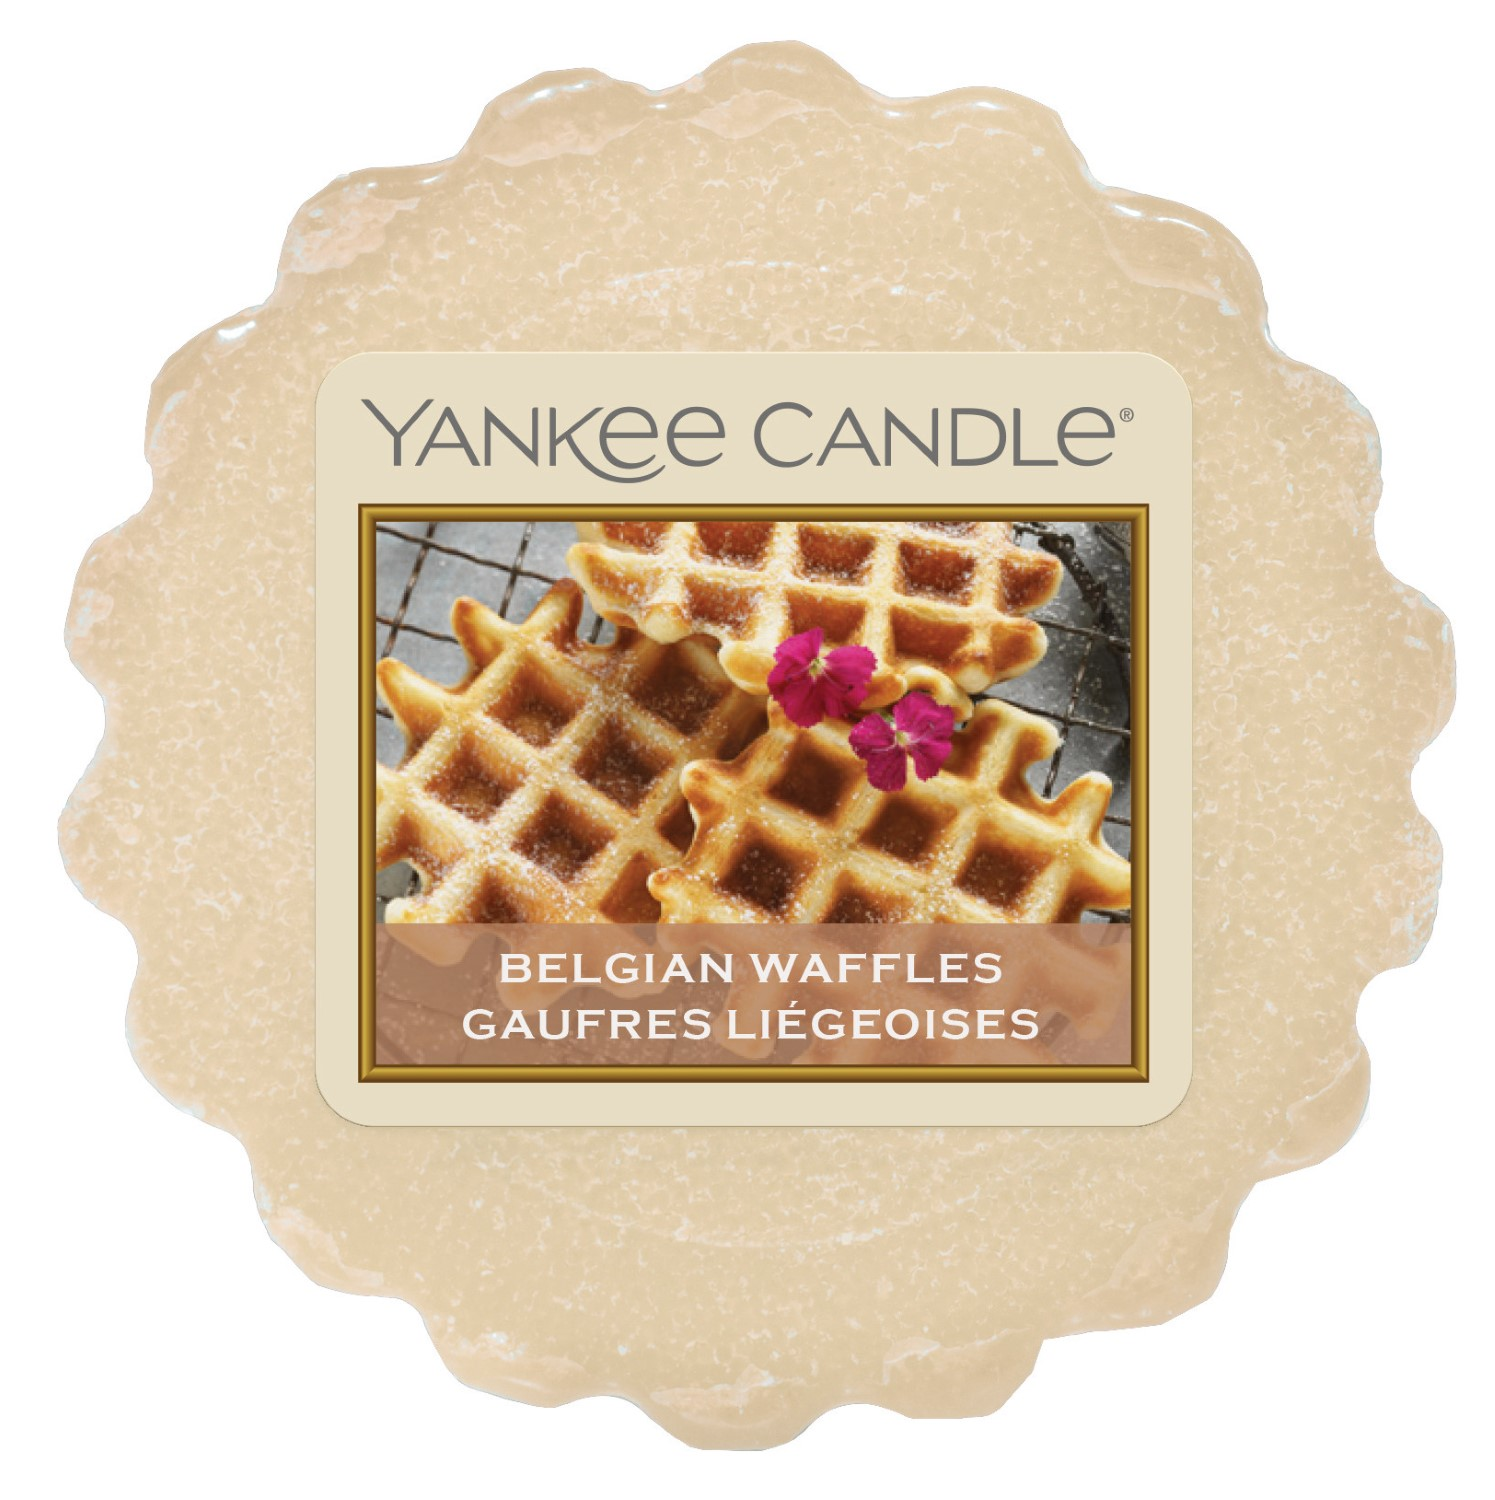 Yankee Candle vonný vosk do aroma lampy Belgian Waffles